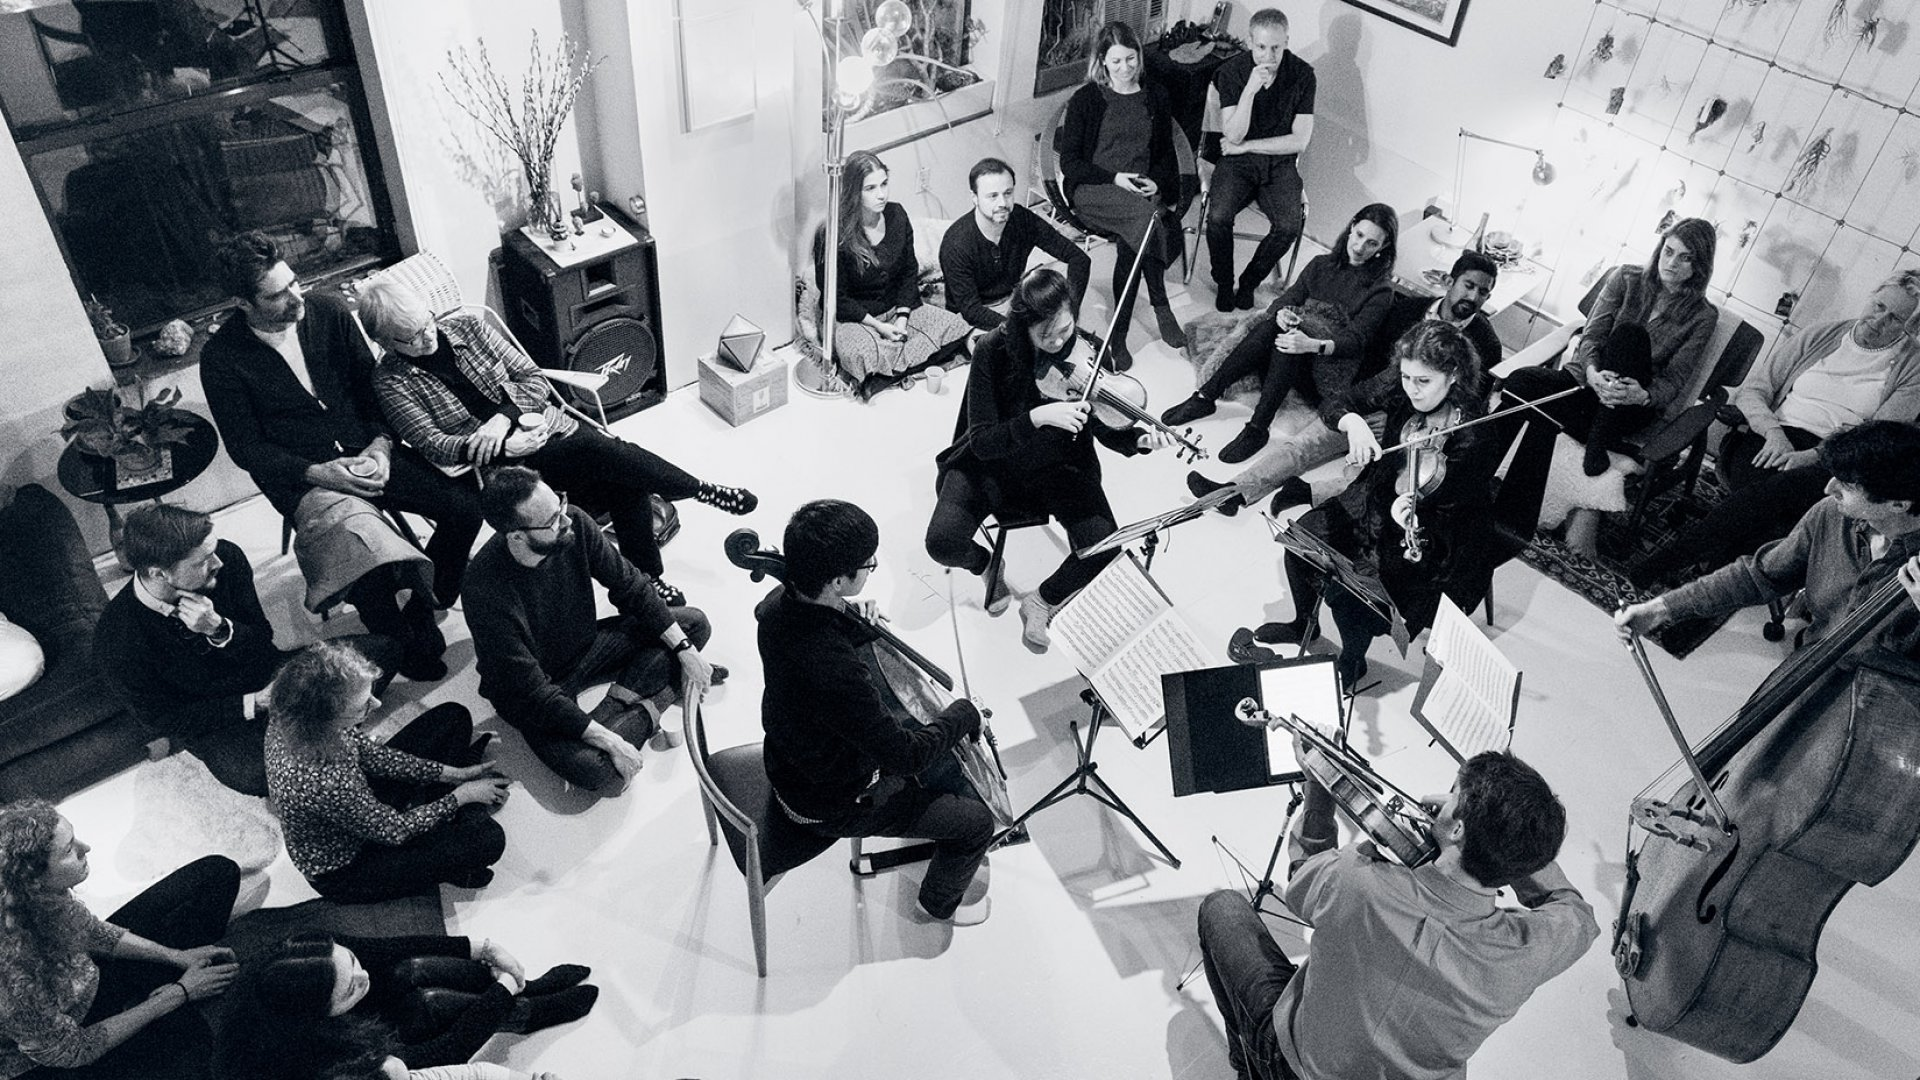 In a loft in Brooklyn's Dumbo neighborhood, a string quintet led by Christine Wu (on violin, top left) plays Dvorak's String Quintet No. 2, Op. 77. The other musicians are (clockwise) Emma Frucht (violin), Alex Bickard (double bass), George Meyer (viola), and Bryan Park (cello).